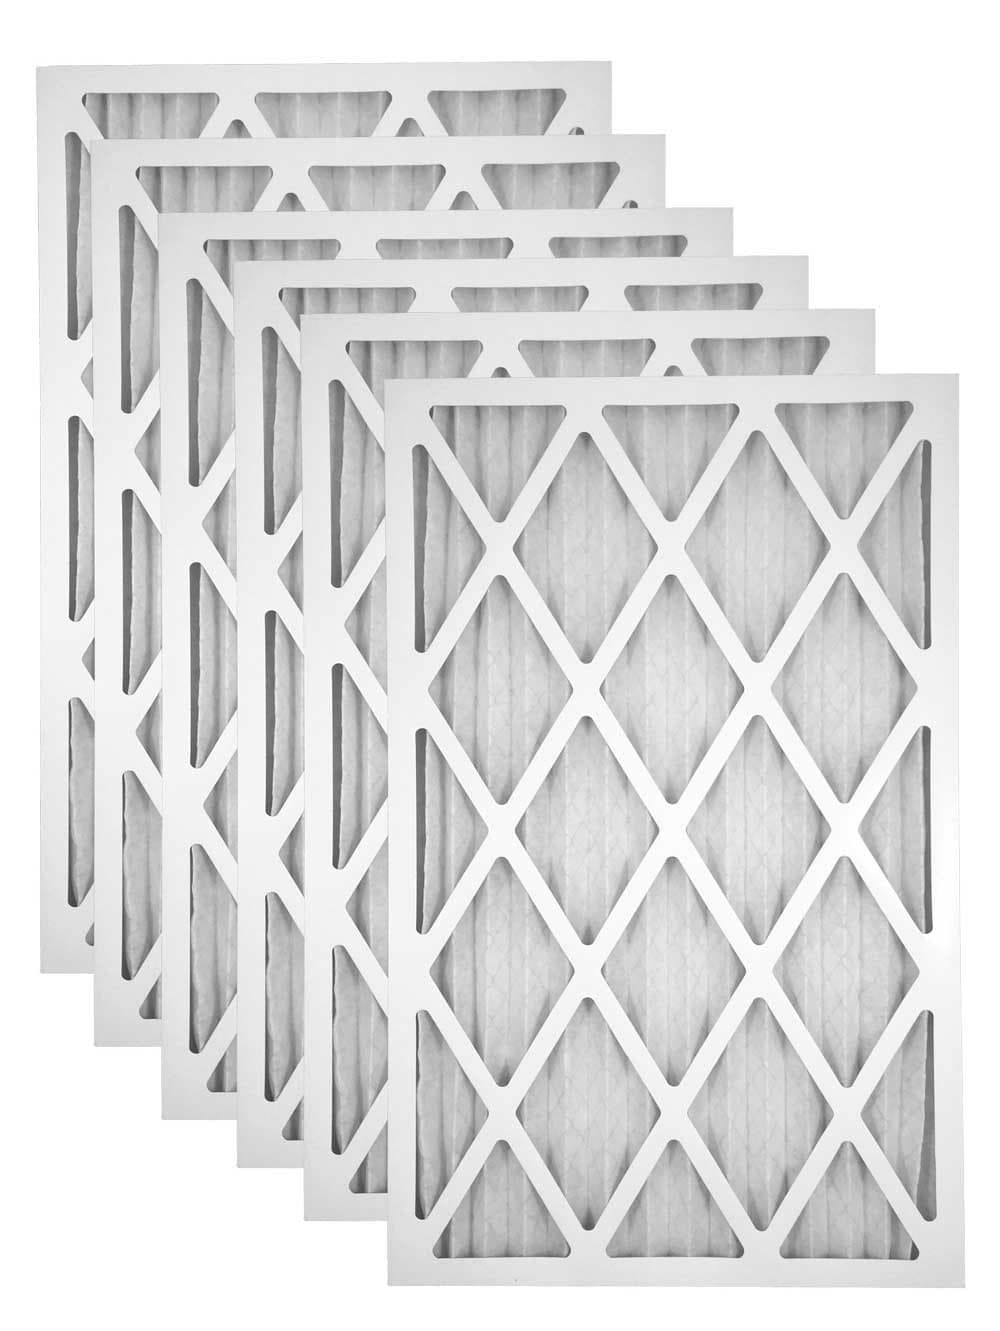 14x24x1 Merv 11 AC Furnace Filter - Case of 6